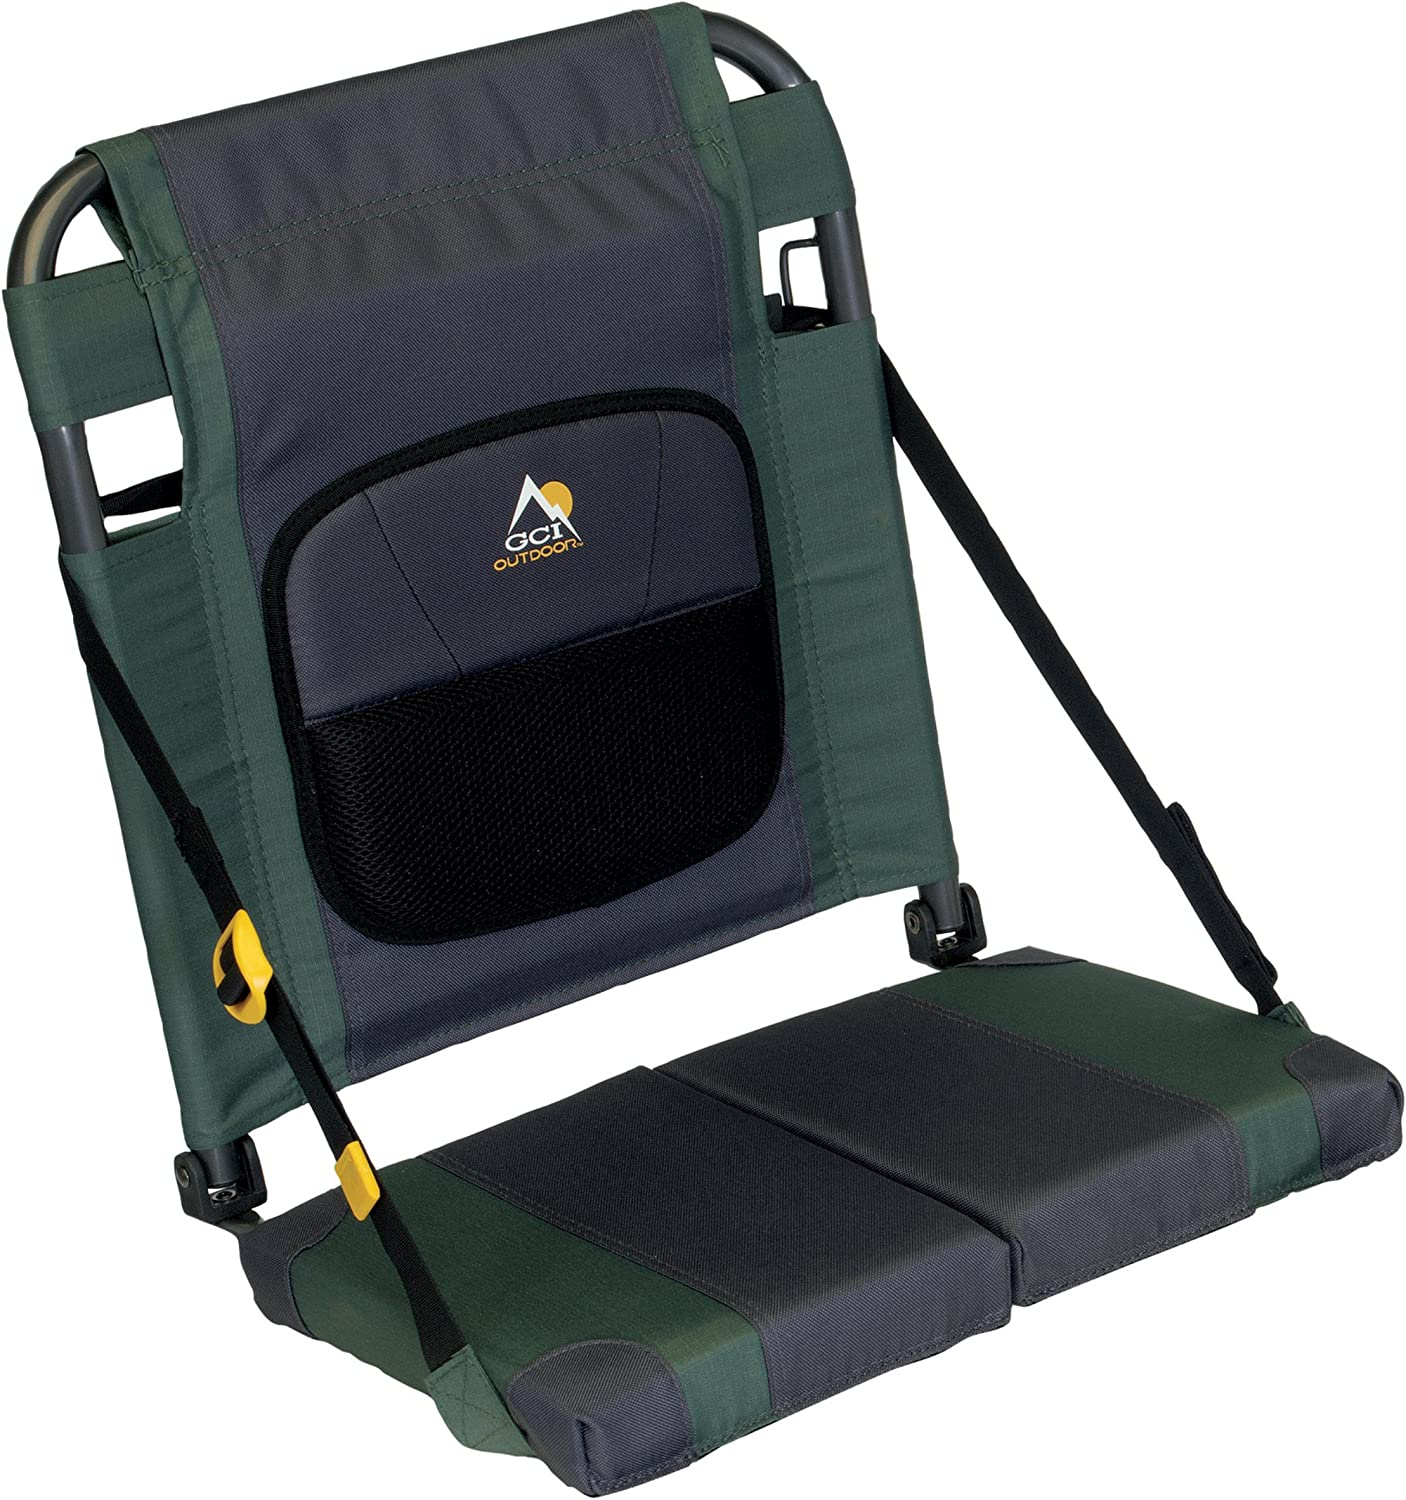 GCI Now free shipping Outdoor SitBacker NEW before selling Adjustable Canoe Seat with Support Back